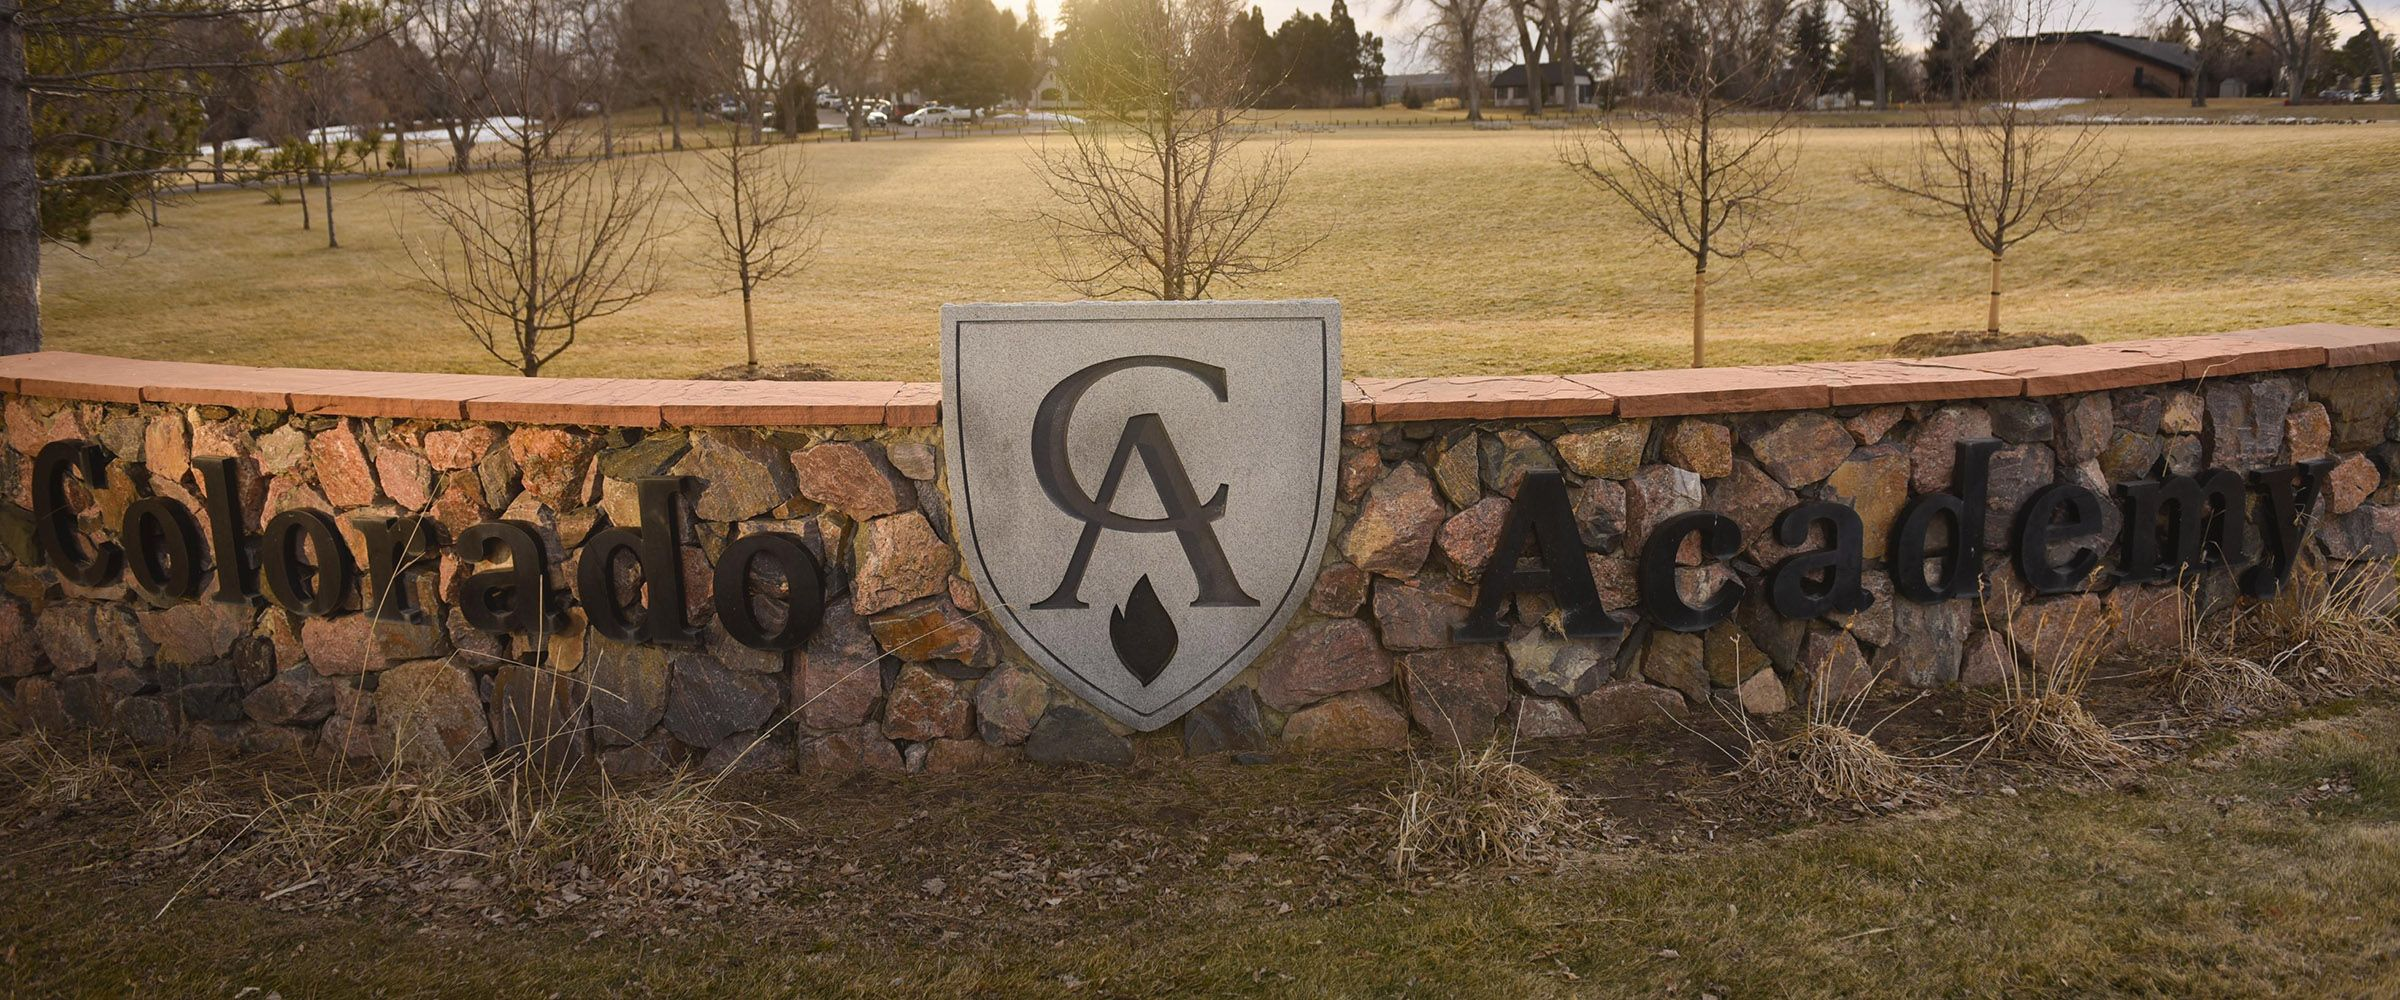 The entry sign at Colorado Academy, a top Pre-K-Grade 12 school in Denver.